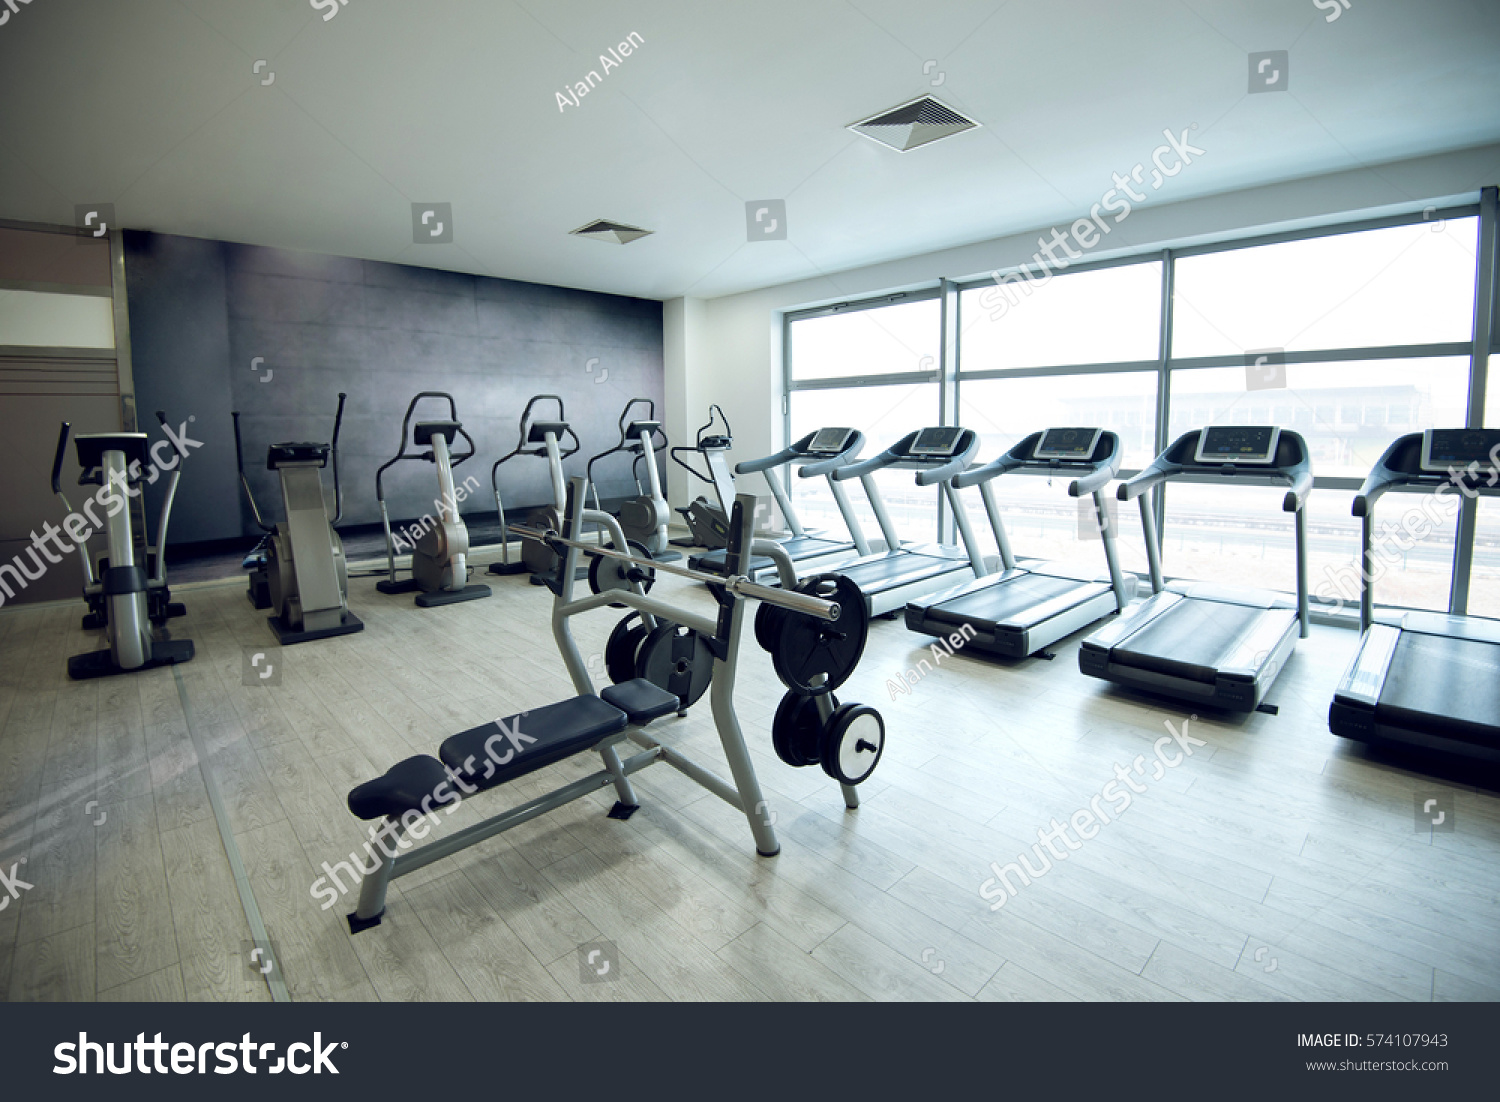 Equipment machines empty modern gym room stock photo